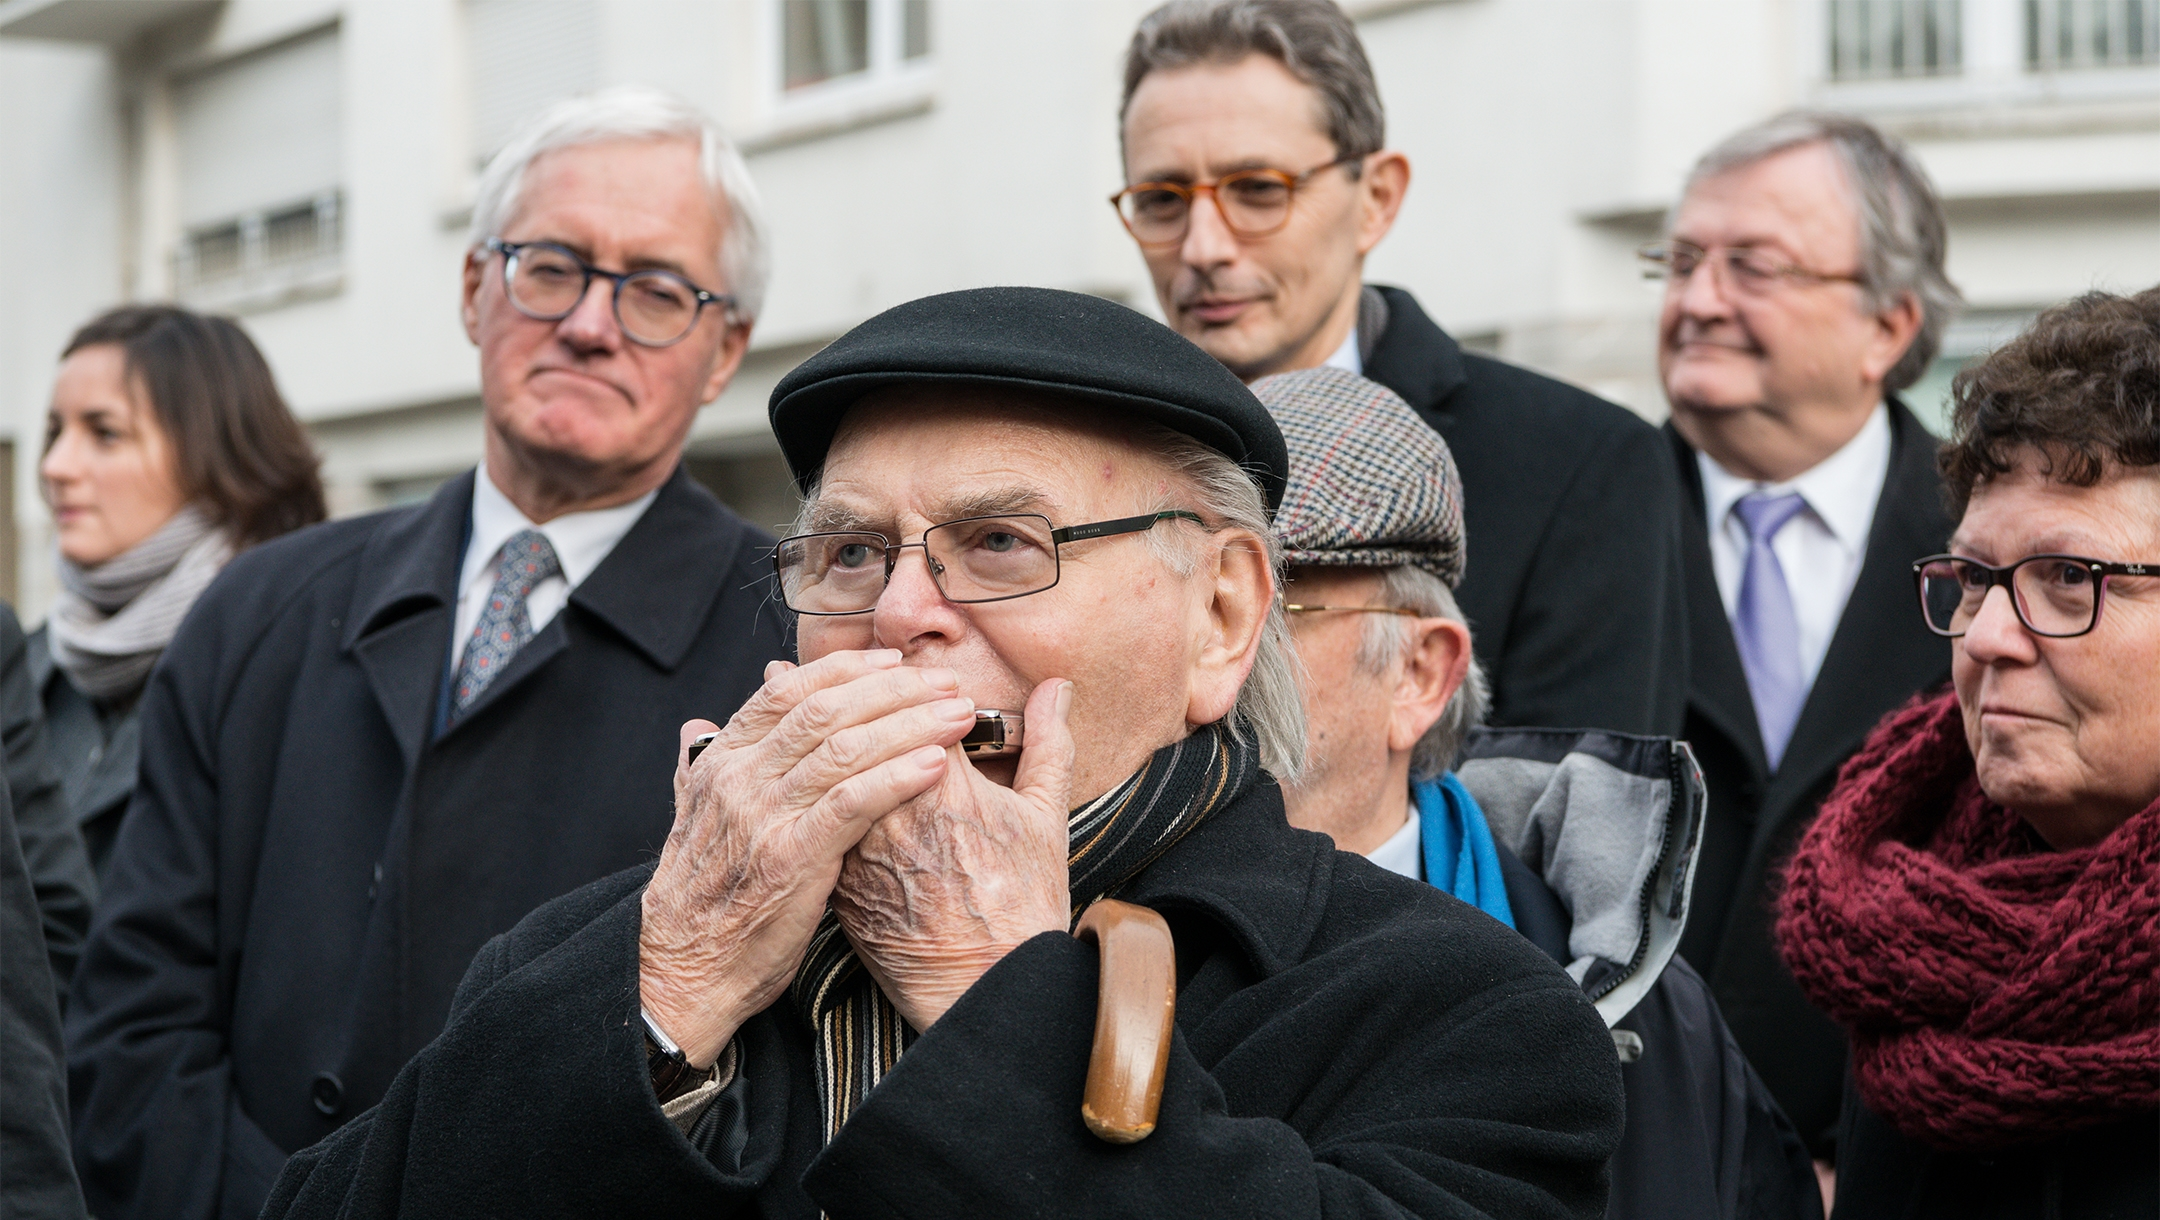 Holocaust survivor Marcel Kahn playing the harmonica during a Holocaust commemoration ceremony in Luxembourg on Jan. 27, 2016. (Jwh/Wikmedia Commons)